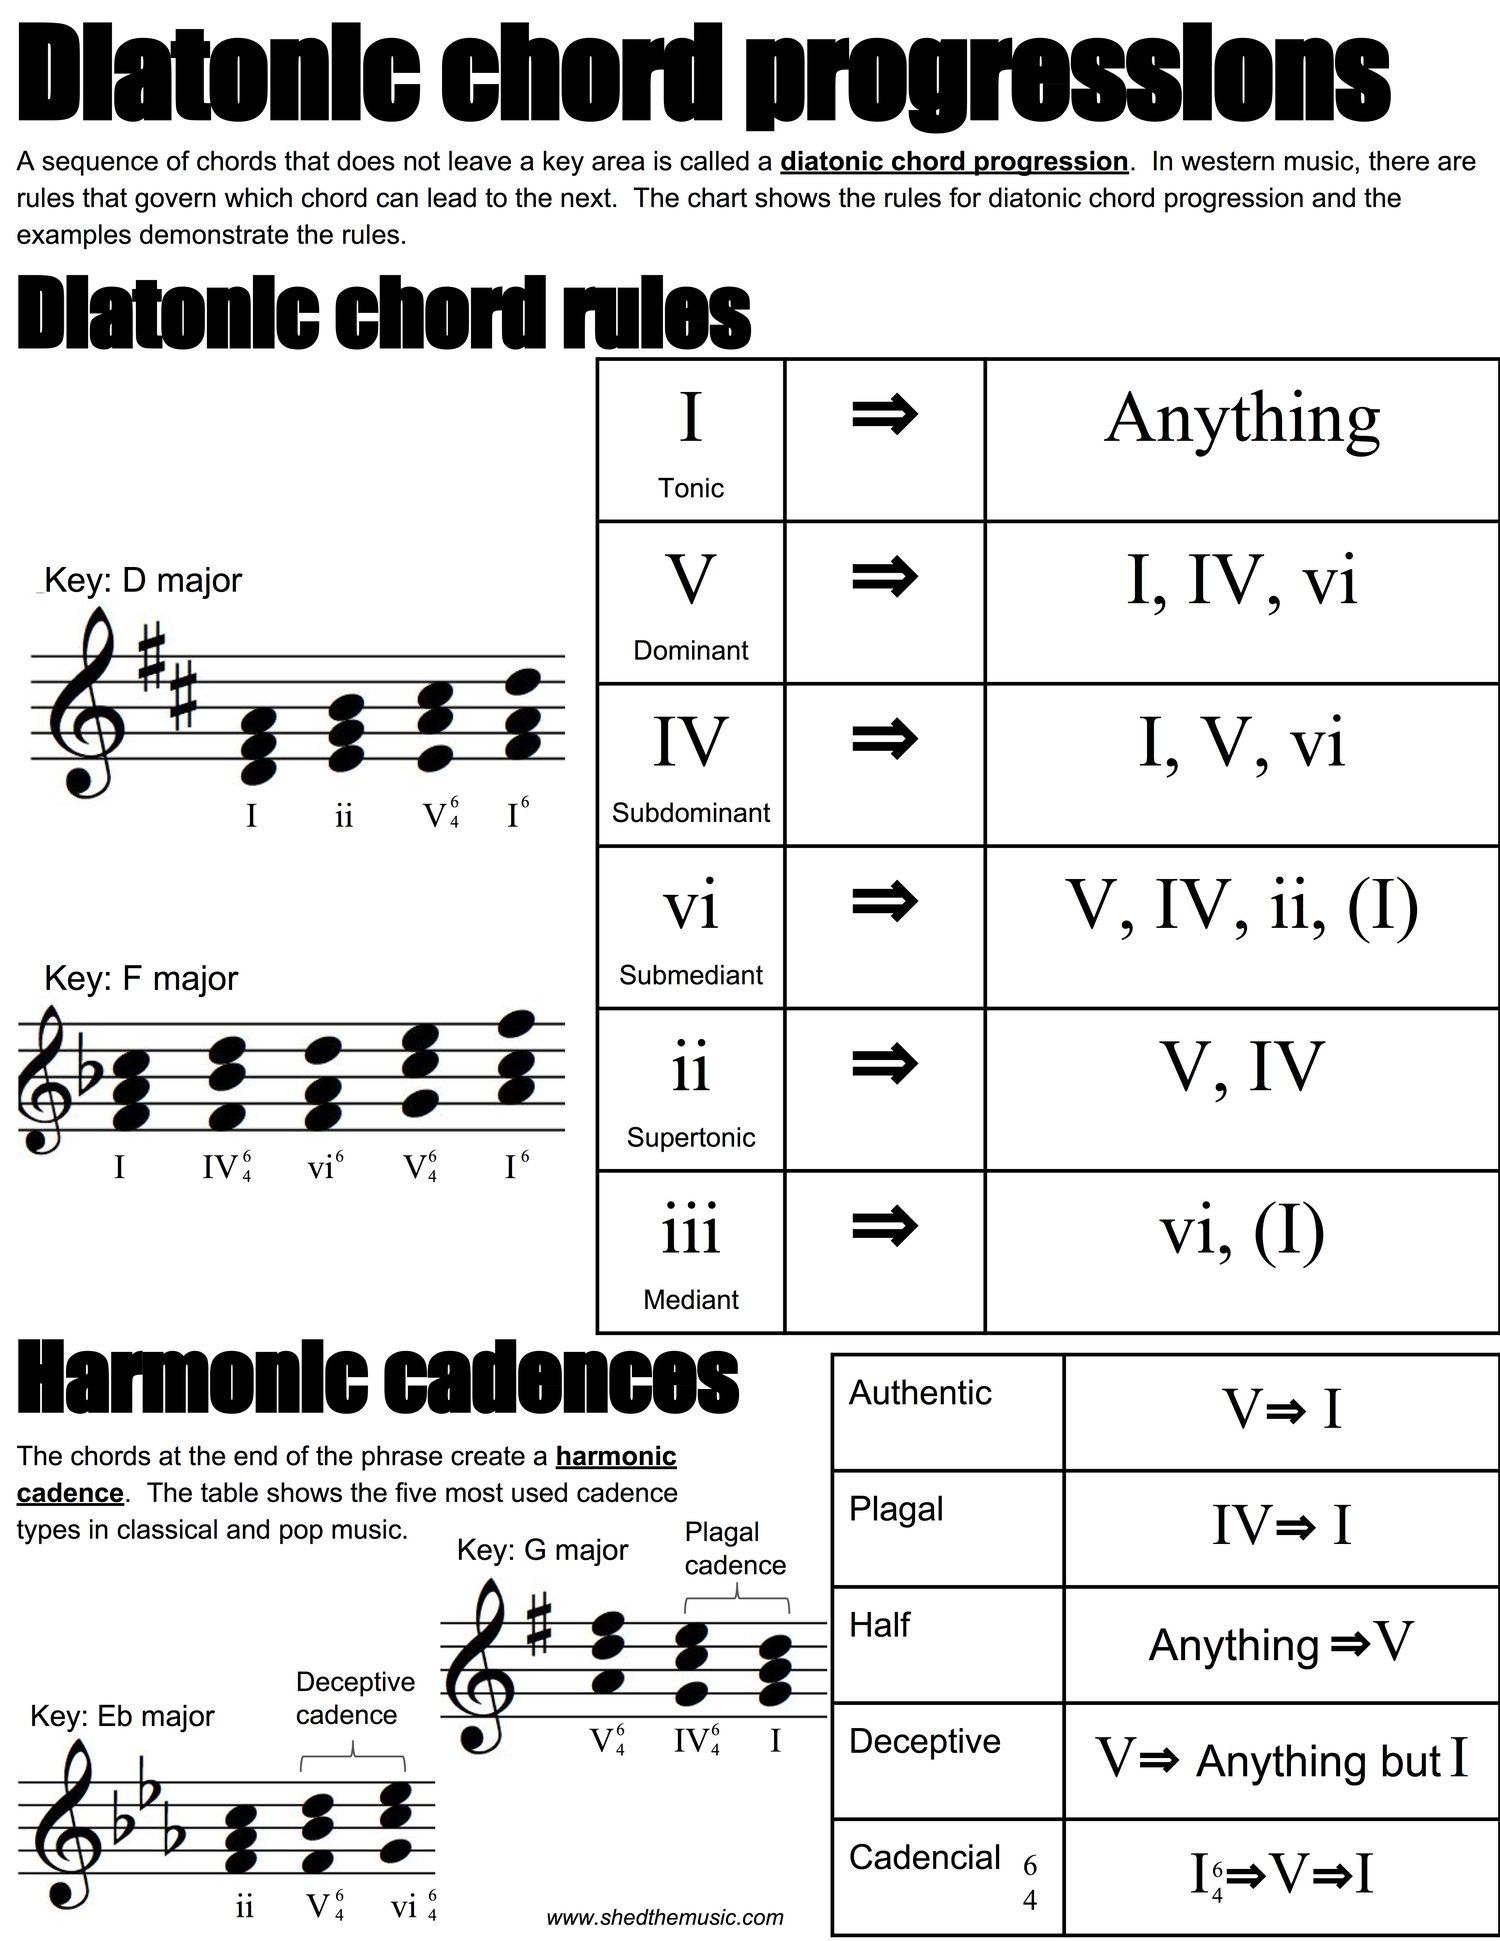 Diatonic Chord Progressions The Shed